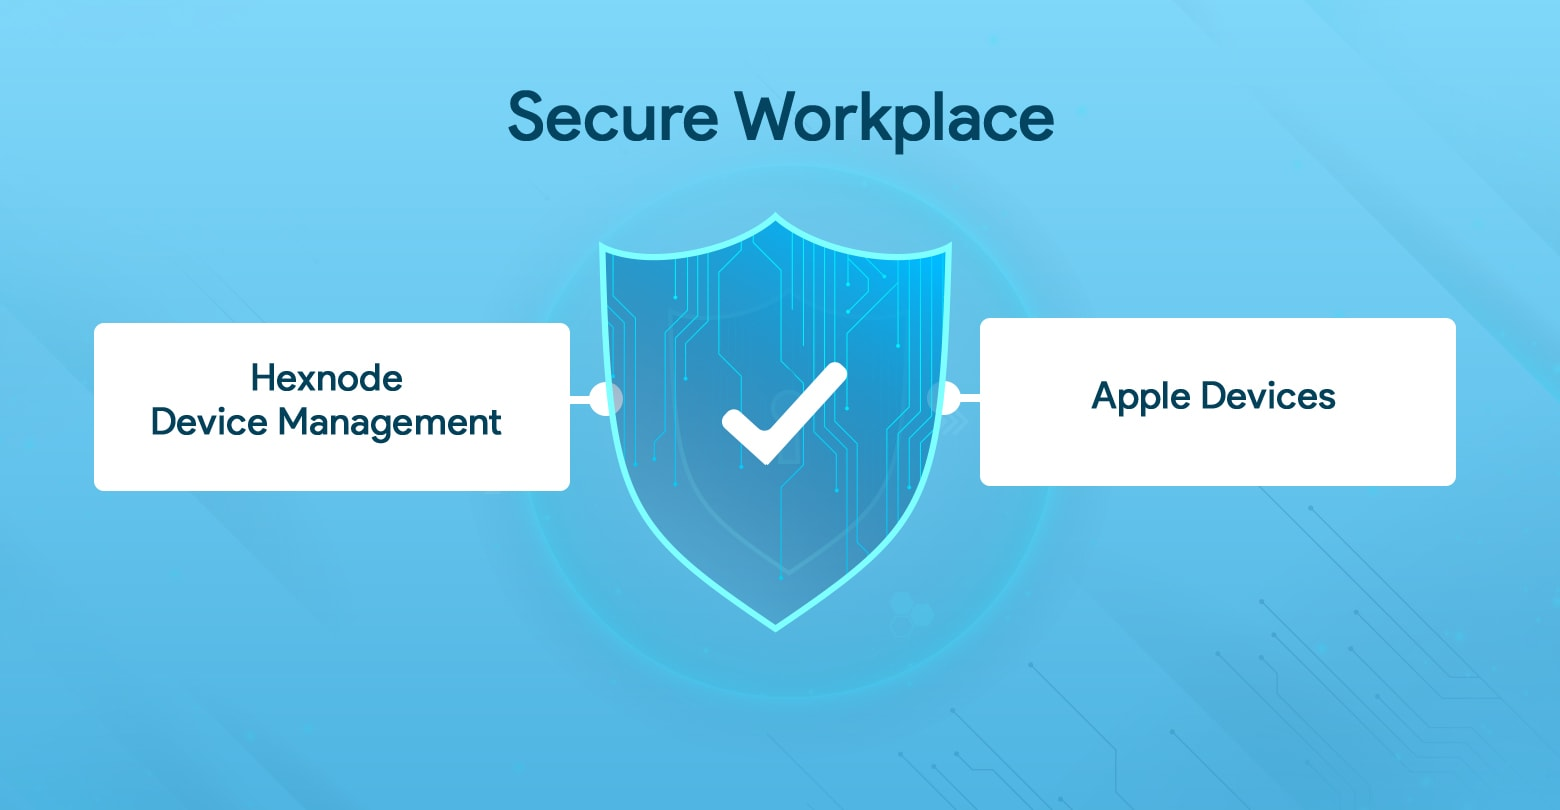 Keep your workplace secure from threats with an easy-to-use centralized MDM platform.